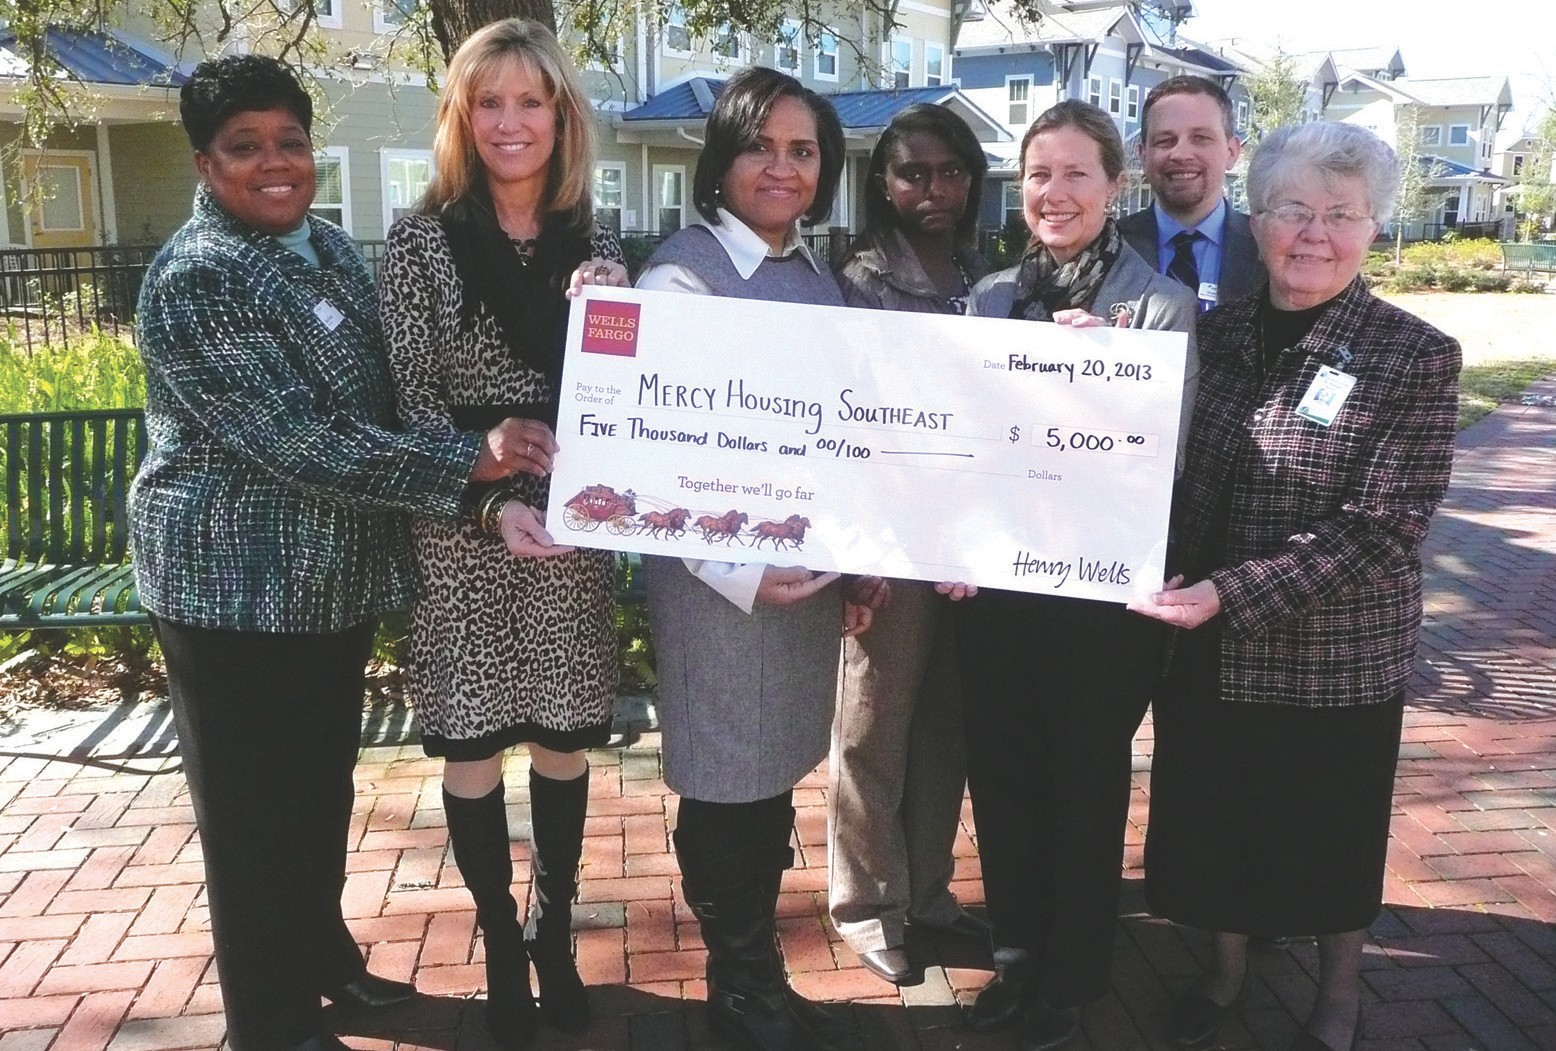 From left to right: Sheri Butler, Jenny Gentry and Connie Bryant with Wells Fargo; Rachel Cunningham, Gray Nolan and Shawn Smitley with Mercy Housing Southeast; and Sister Margaret Beatty with St. Joseph's/Candler.